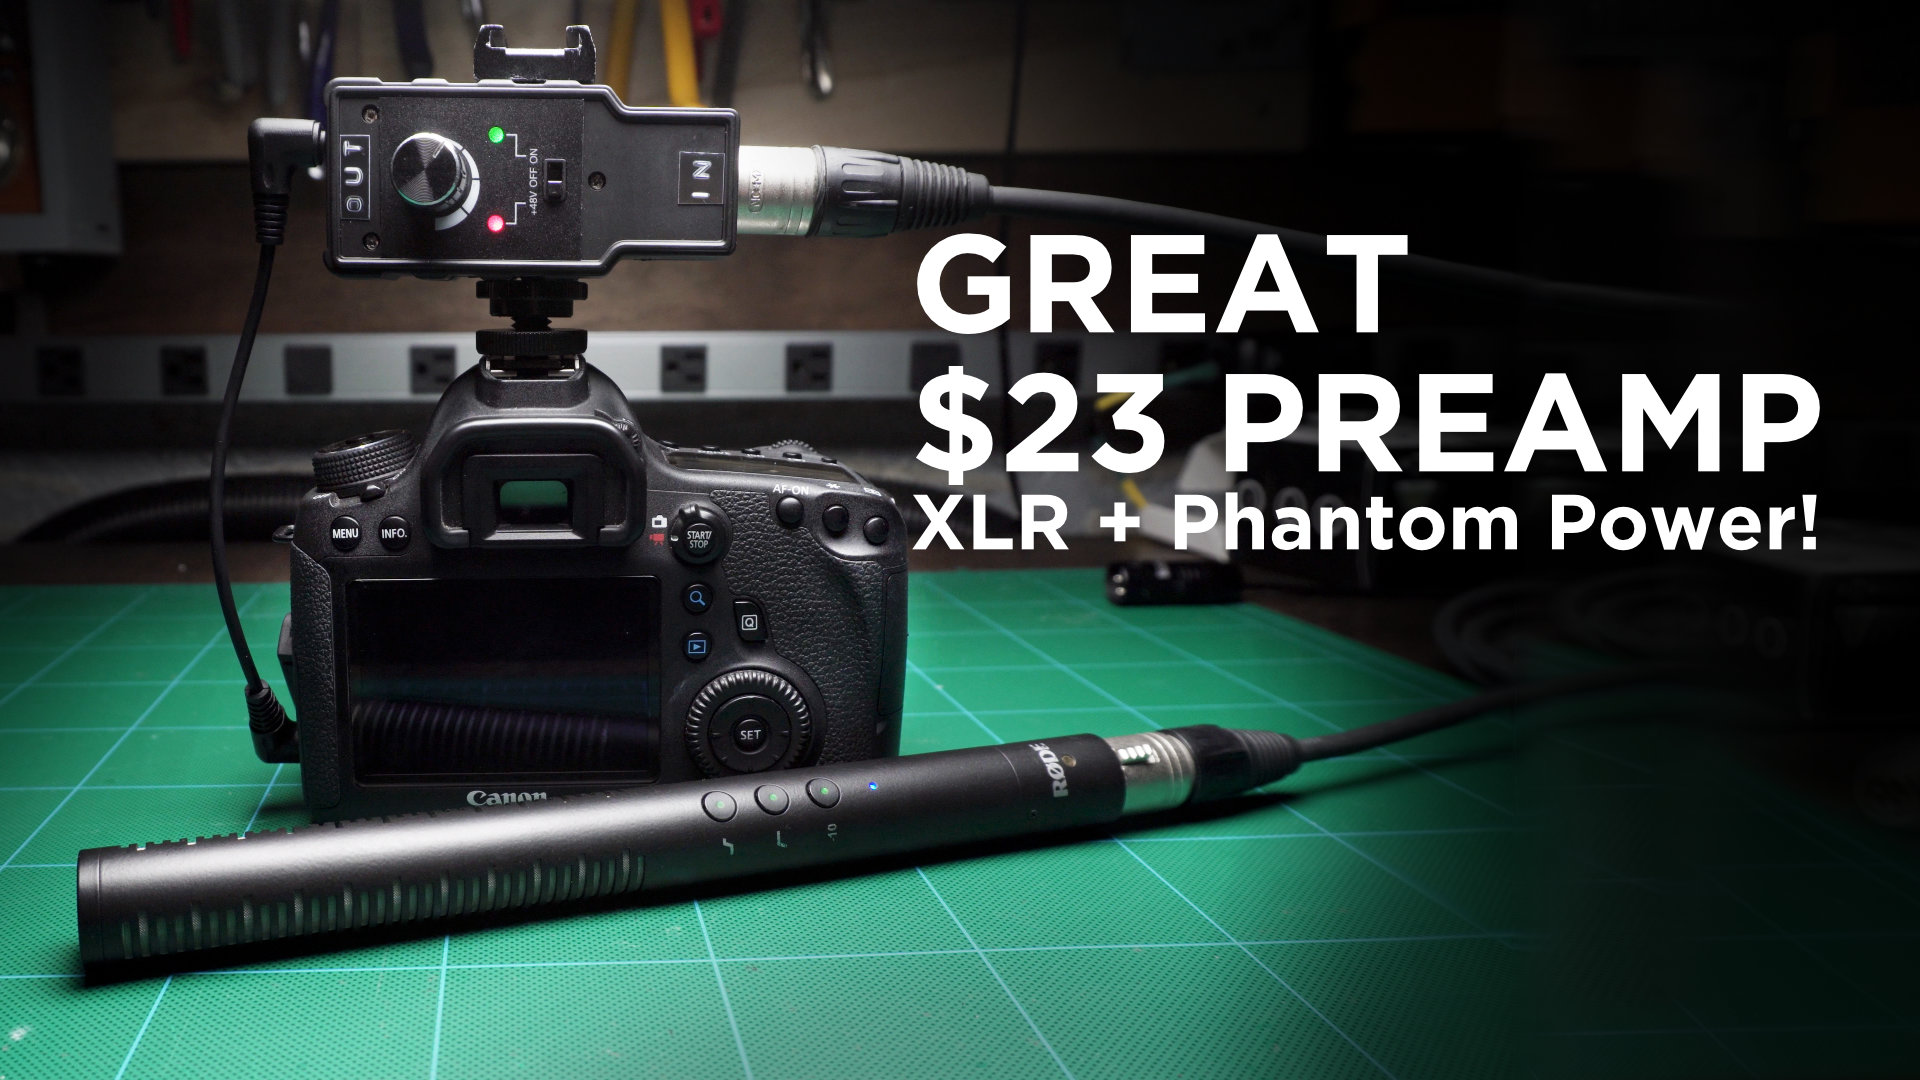 Great $23 Budget Preamp for Video Shooters